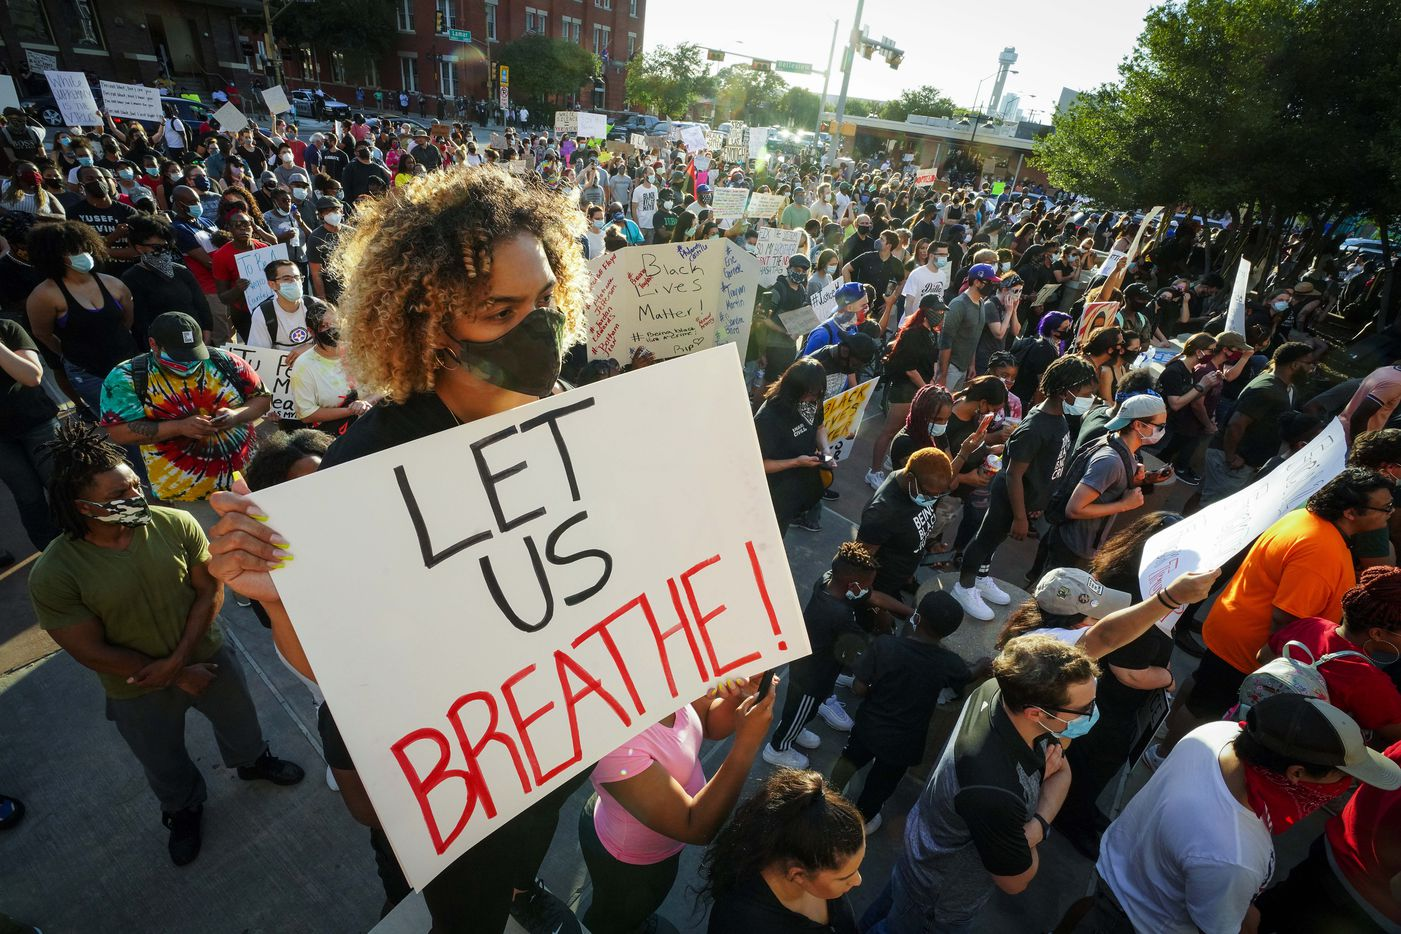 Tiona Bowman holds a sign reading ÒLet Us BreatheÓ during a protest against police brutality at the Dallas Police Headquarters on Friday, May 29, 2020, in Dallas.